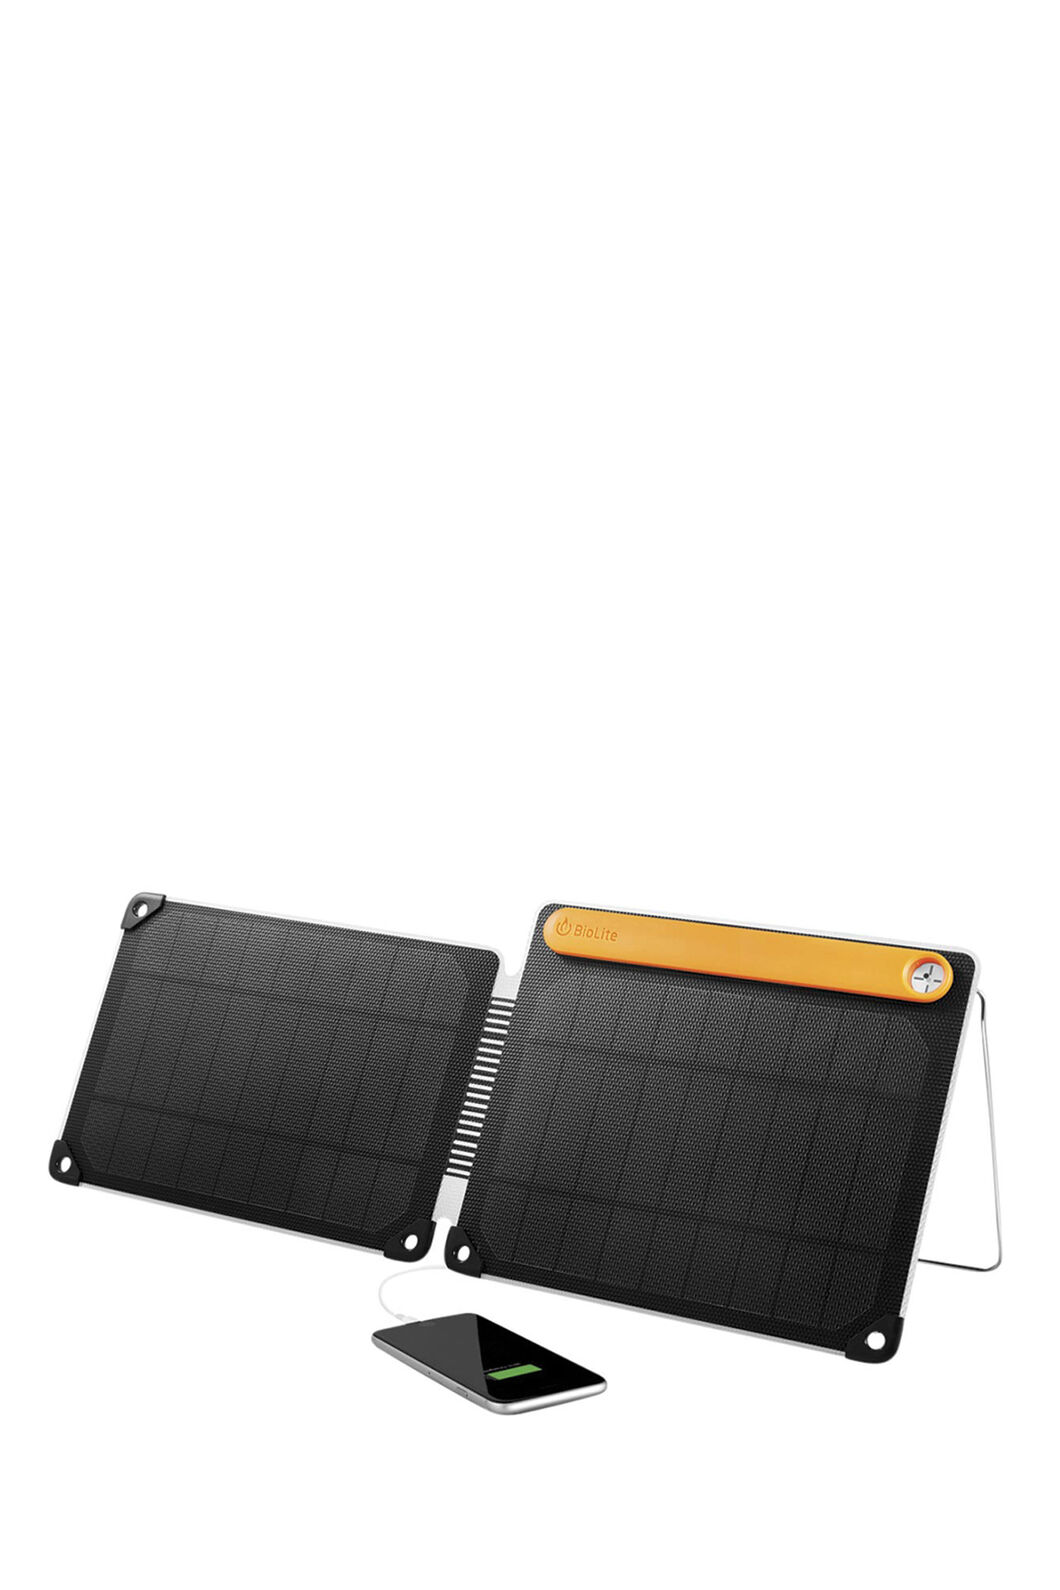 BioLite 10+ Solar Panel, None, hi-res